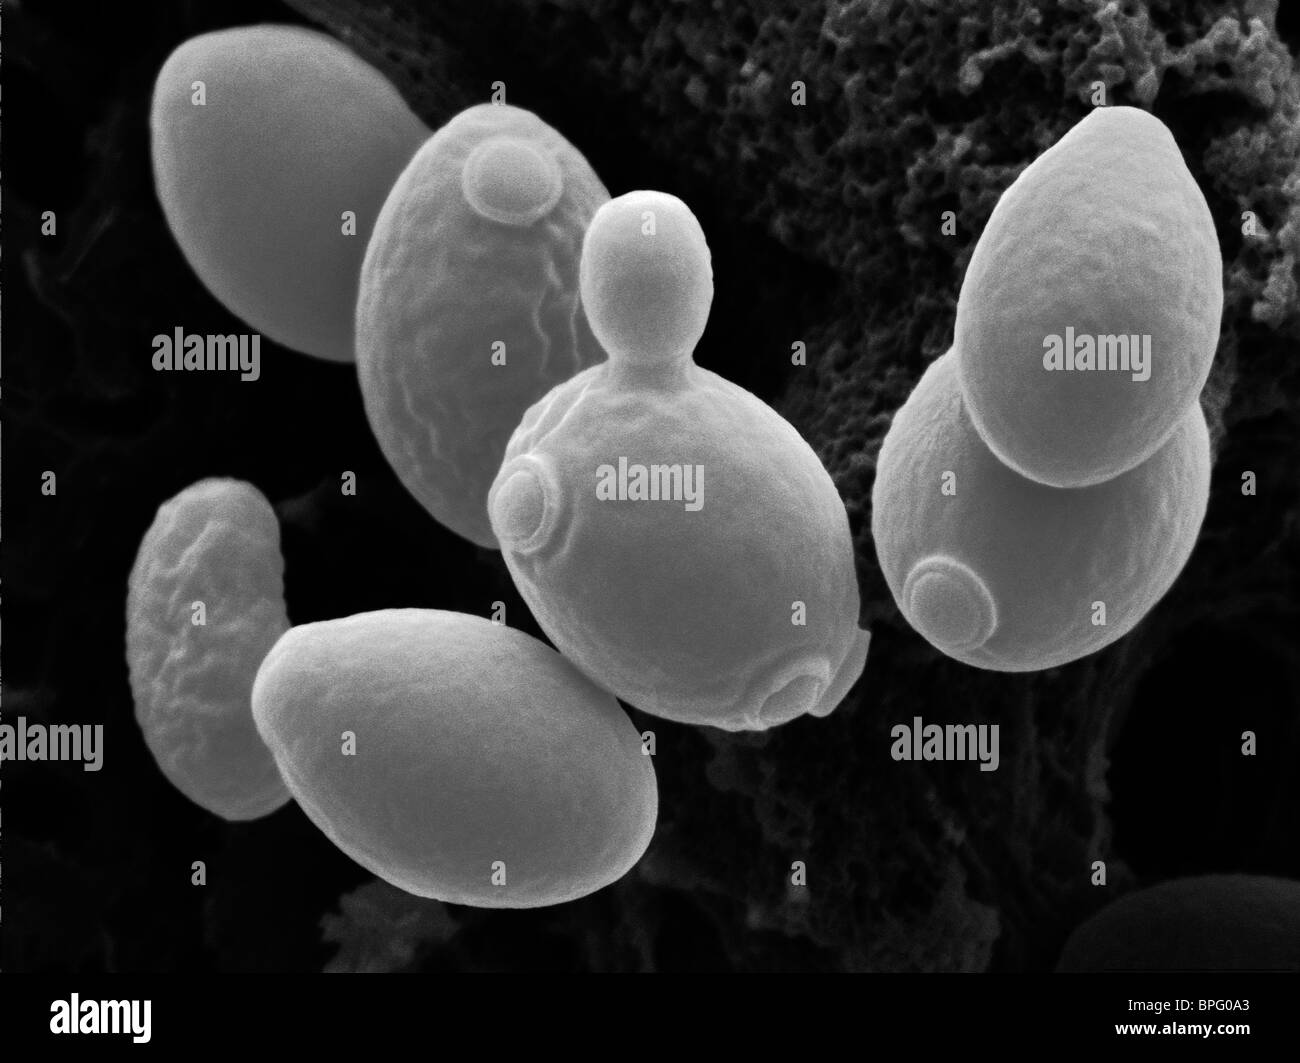 This is a false coloured scanning electron micrograph of Saccharomyces cerevisiae, budding yeast. - Stock Image